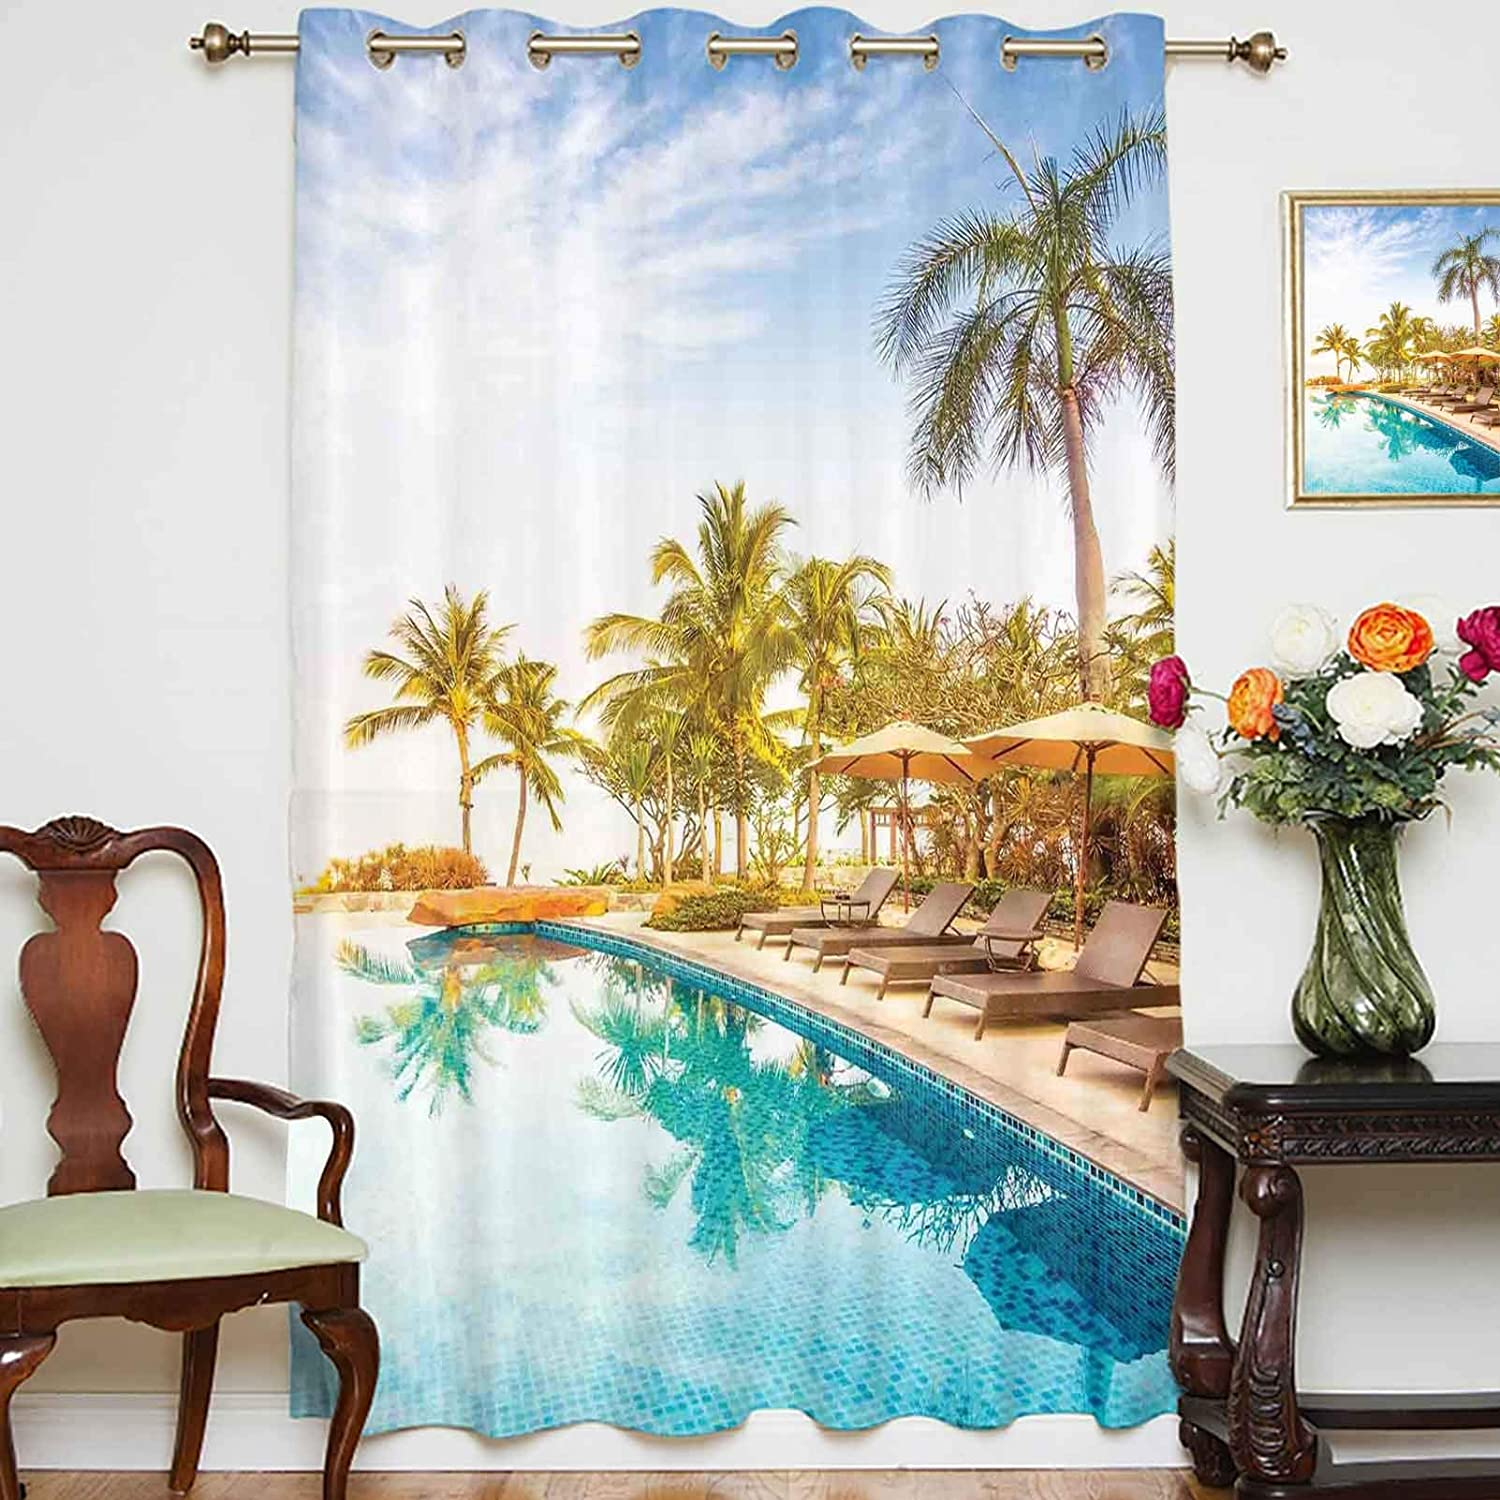 Blackout Shading Curtains Aerial View of A Pool in A Health Resort Spa Hotel with Exotic Elements Sports Modern Photo Grommet Top Thermal Insulated Curtain for Home Decor,Single Panel,42